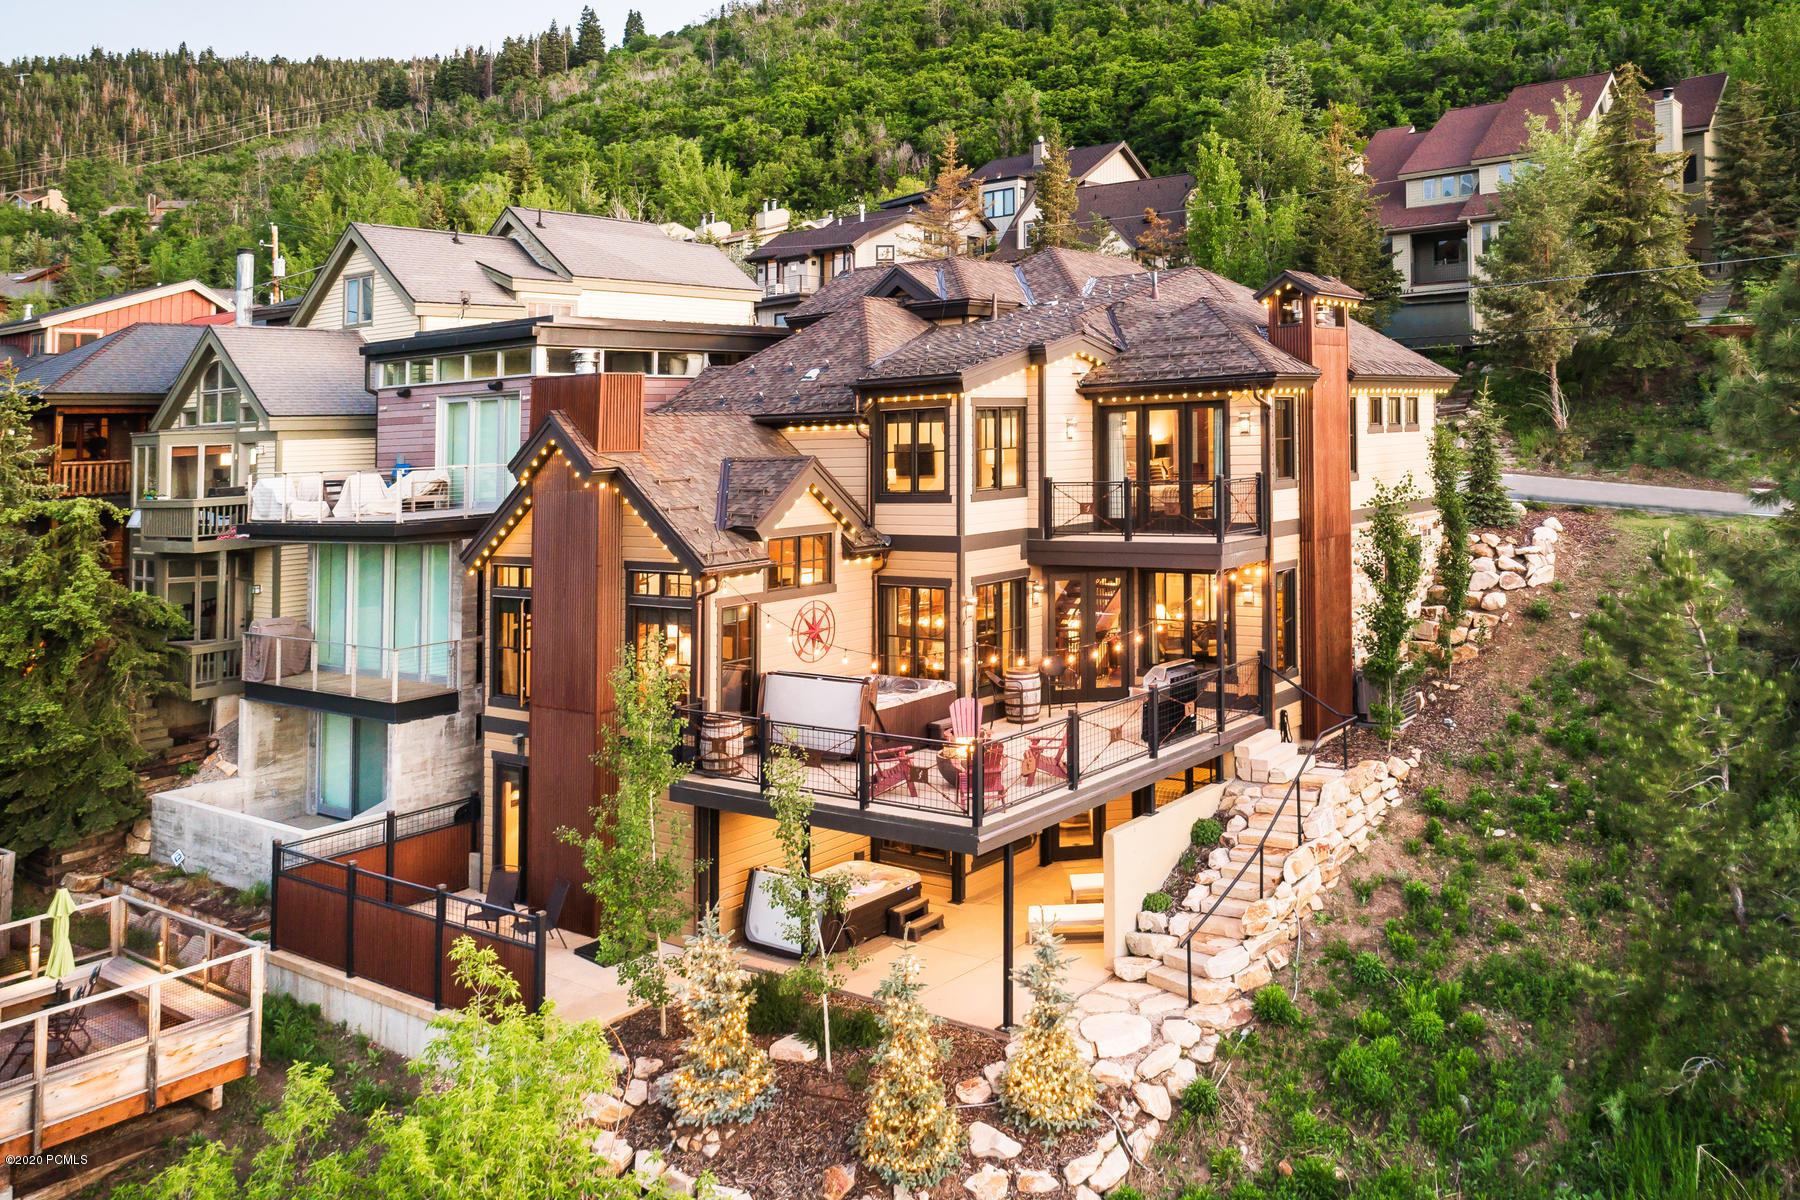 1138 Lowell Avenue, Park City, Utah 84060, 5 Bedrooms Bedrooms, ,6 BathroomsBathrooms,Single Family,For Sale,Lowell Avenue,20190109112430415765000000